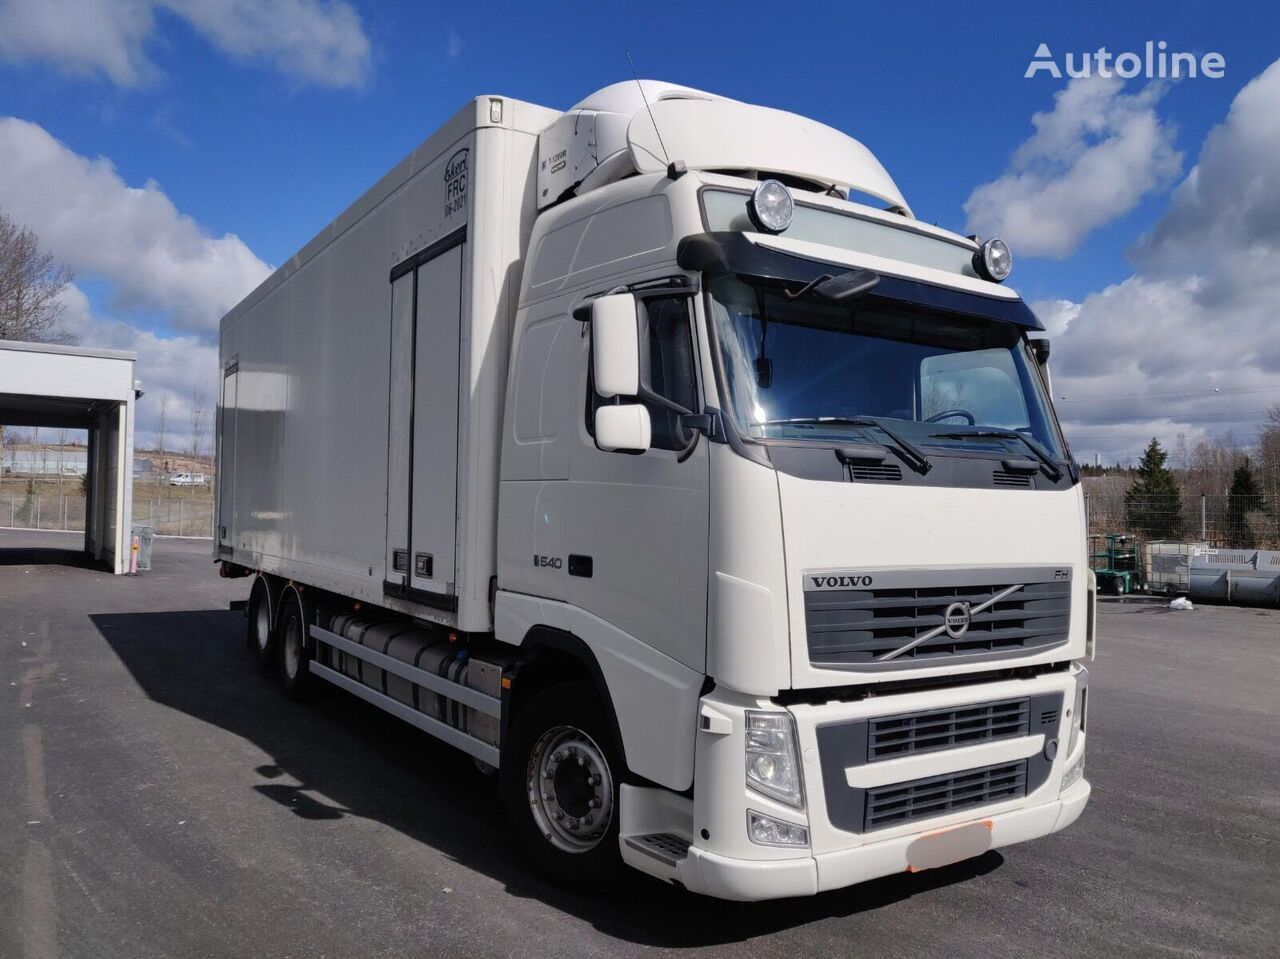 VOLVO FH540 Thermoking T-1200R refrigerated truck